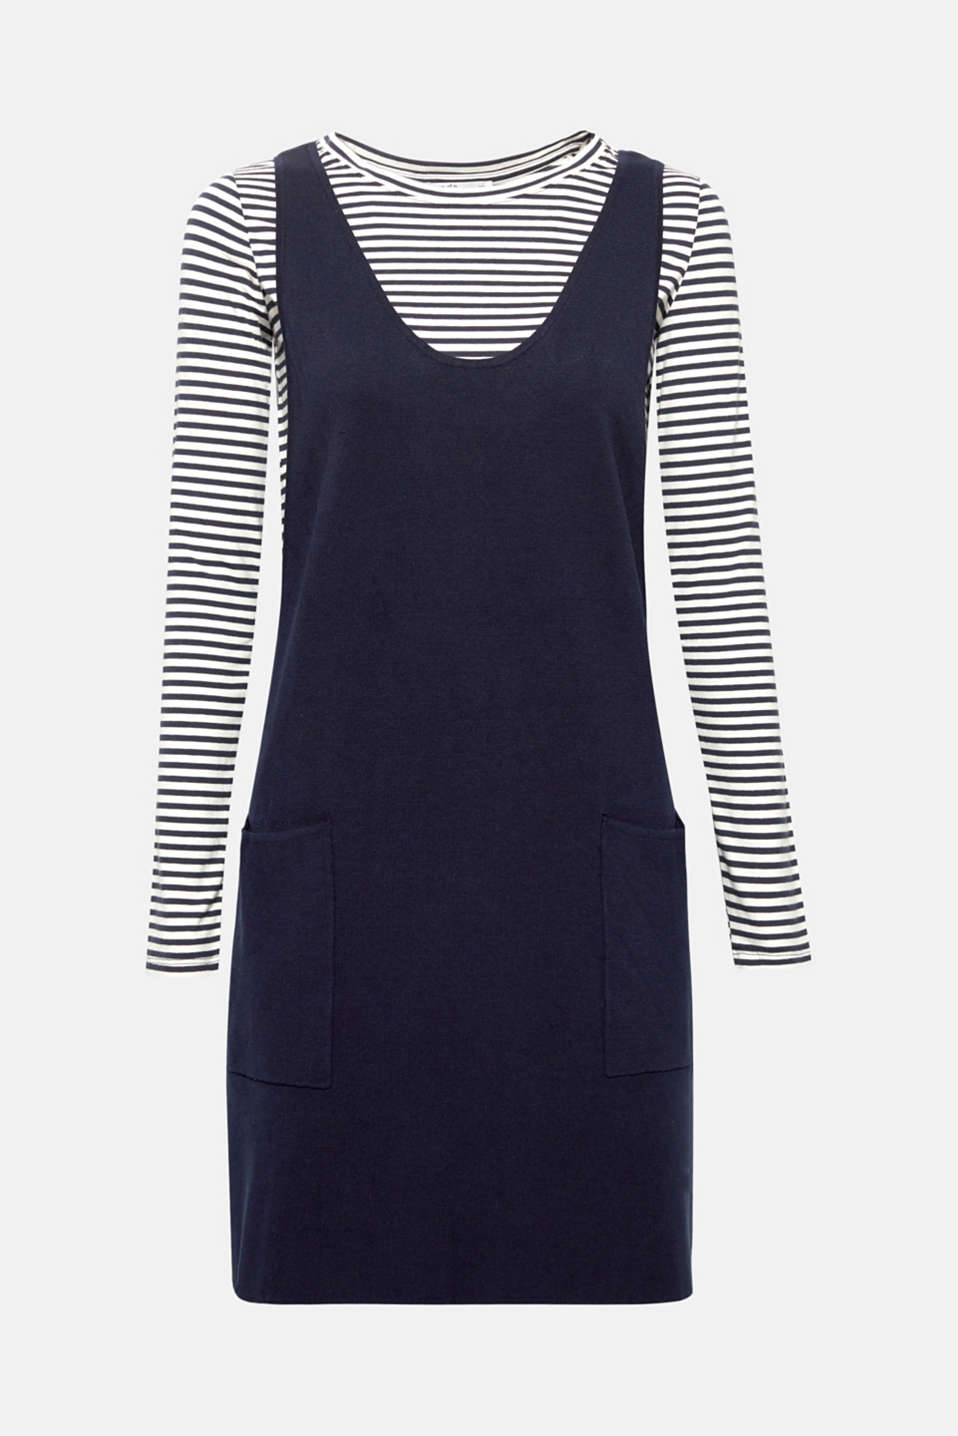 A long sleeve top with sporty stripes and a casual-cut strappy dress in one – you can automatically combine two stylish essentials with this dress.